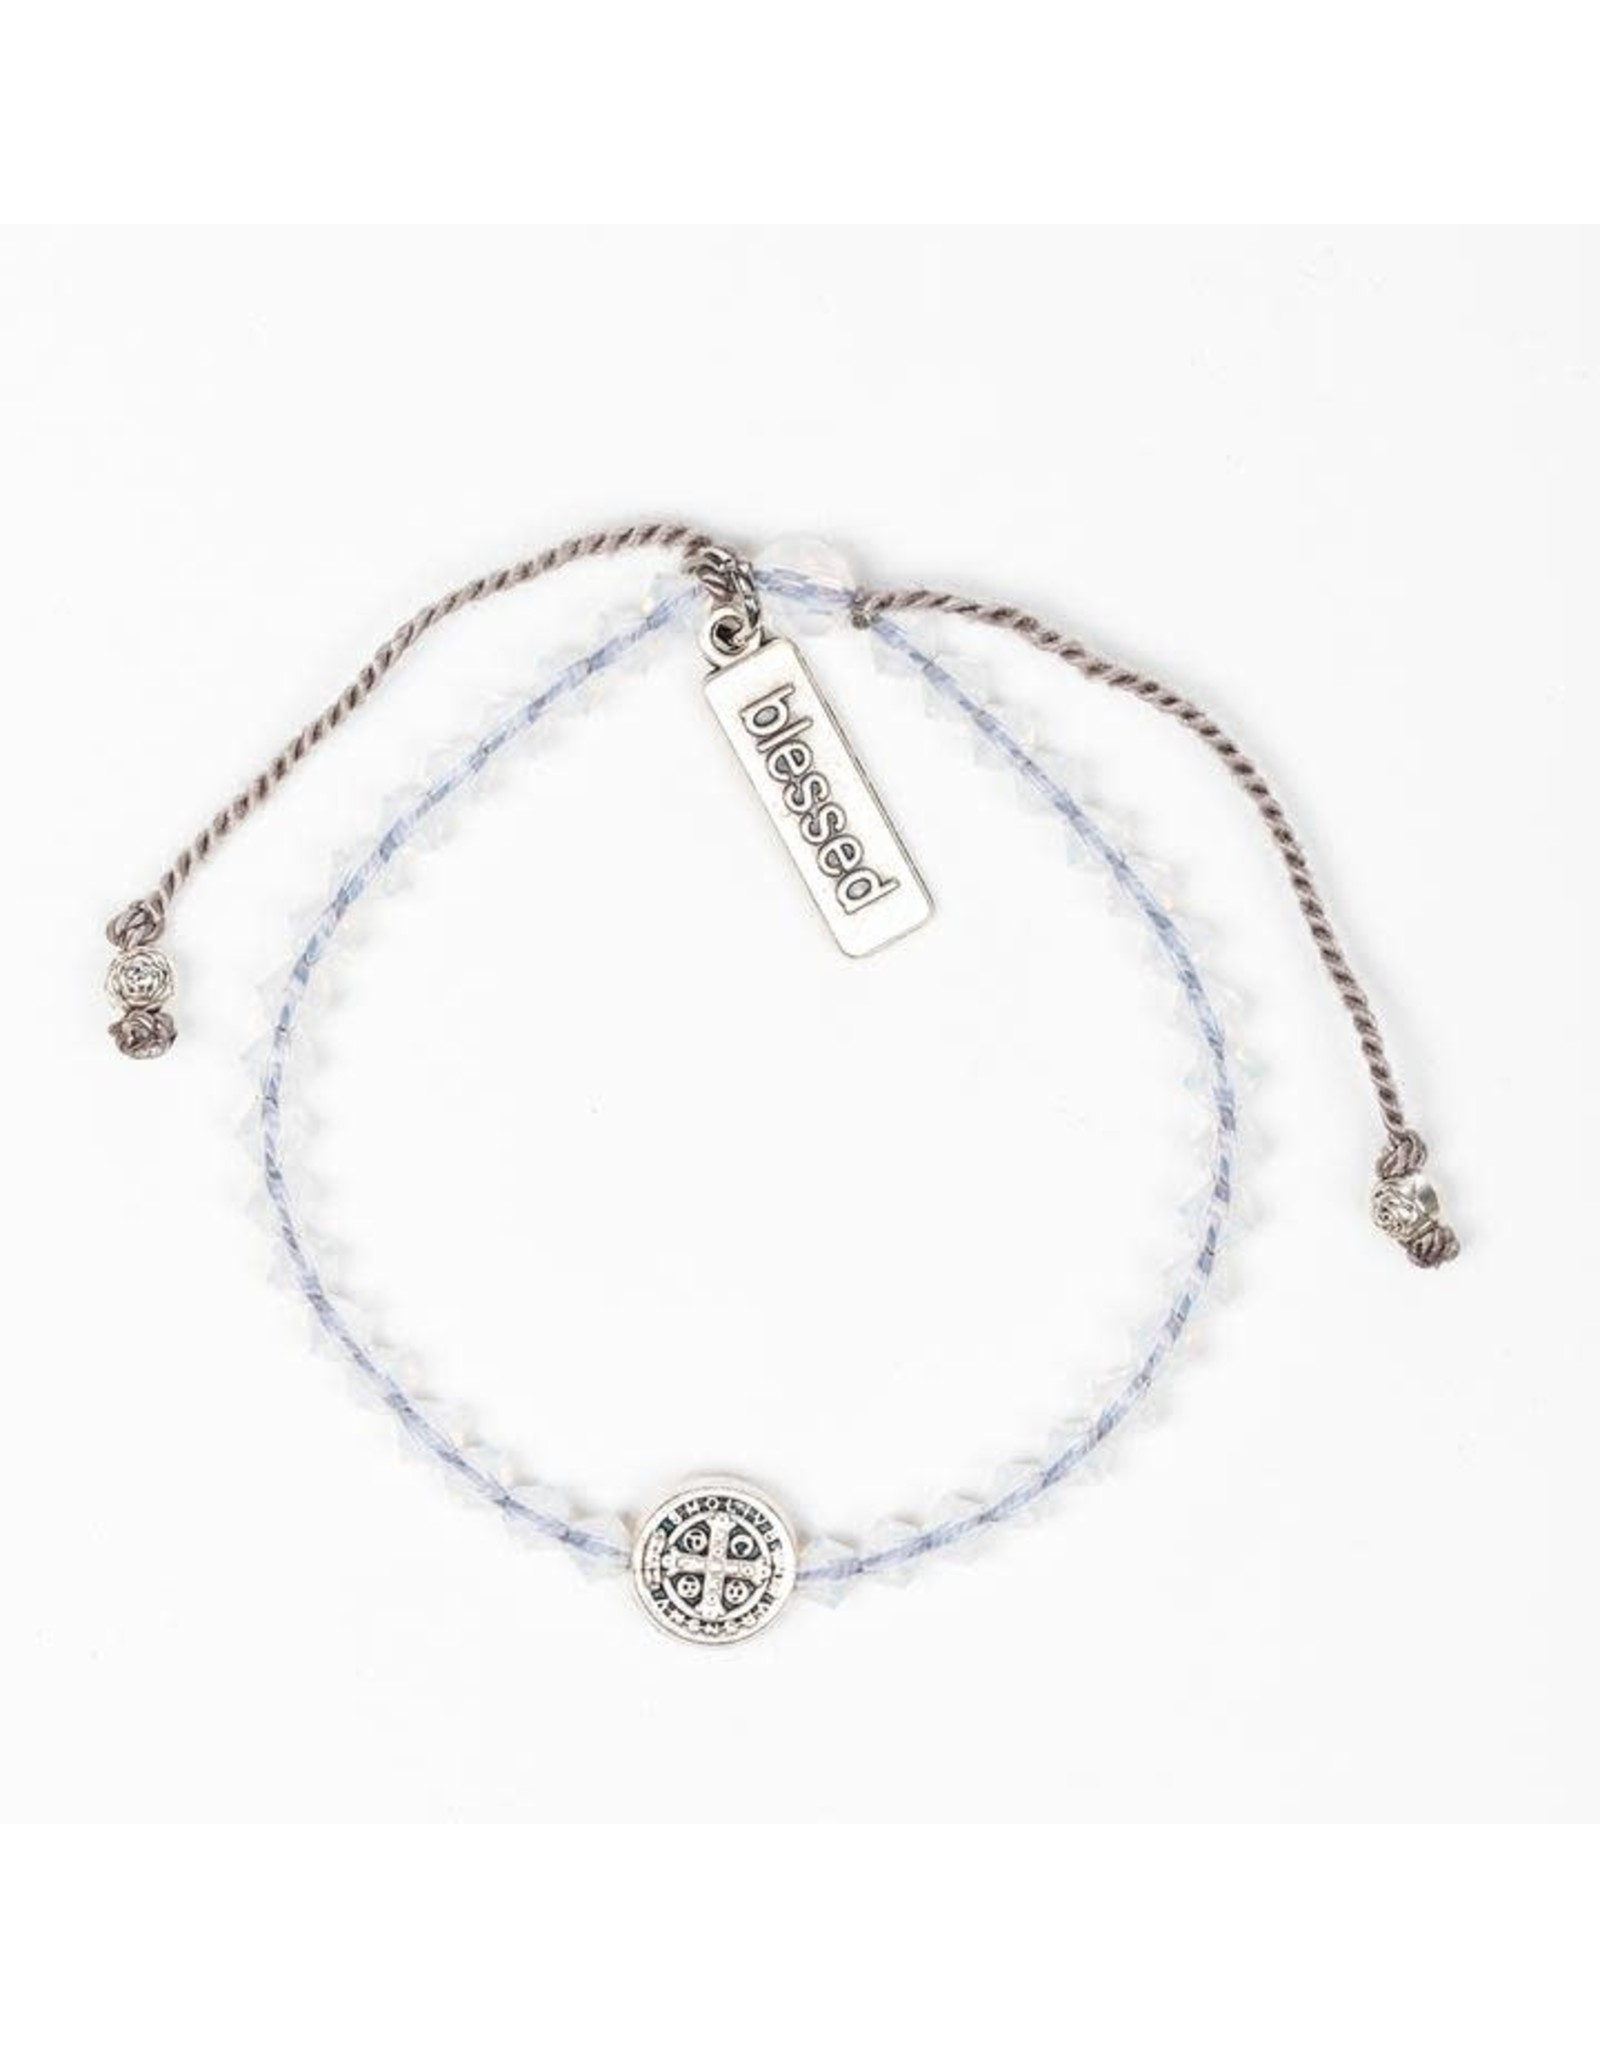 MSMH Birthday Blessing Bracelet- October Silver